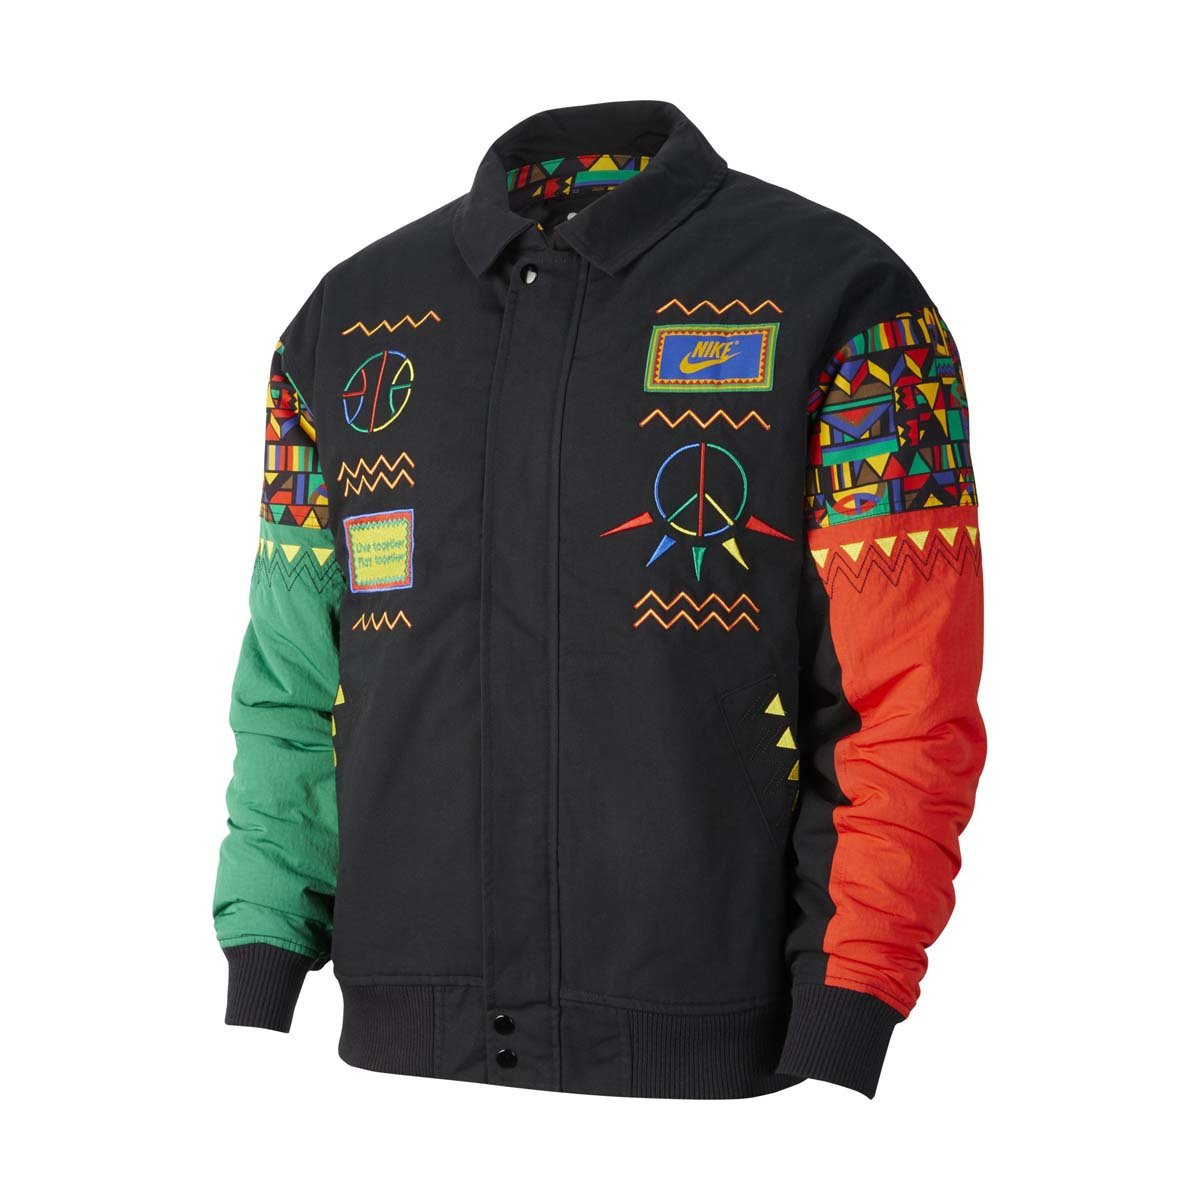 Nike Sportswear Men's Reissue Woven Jacket